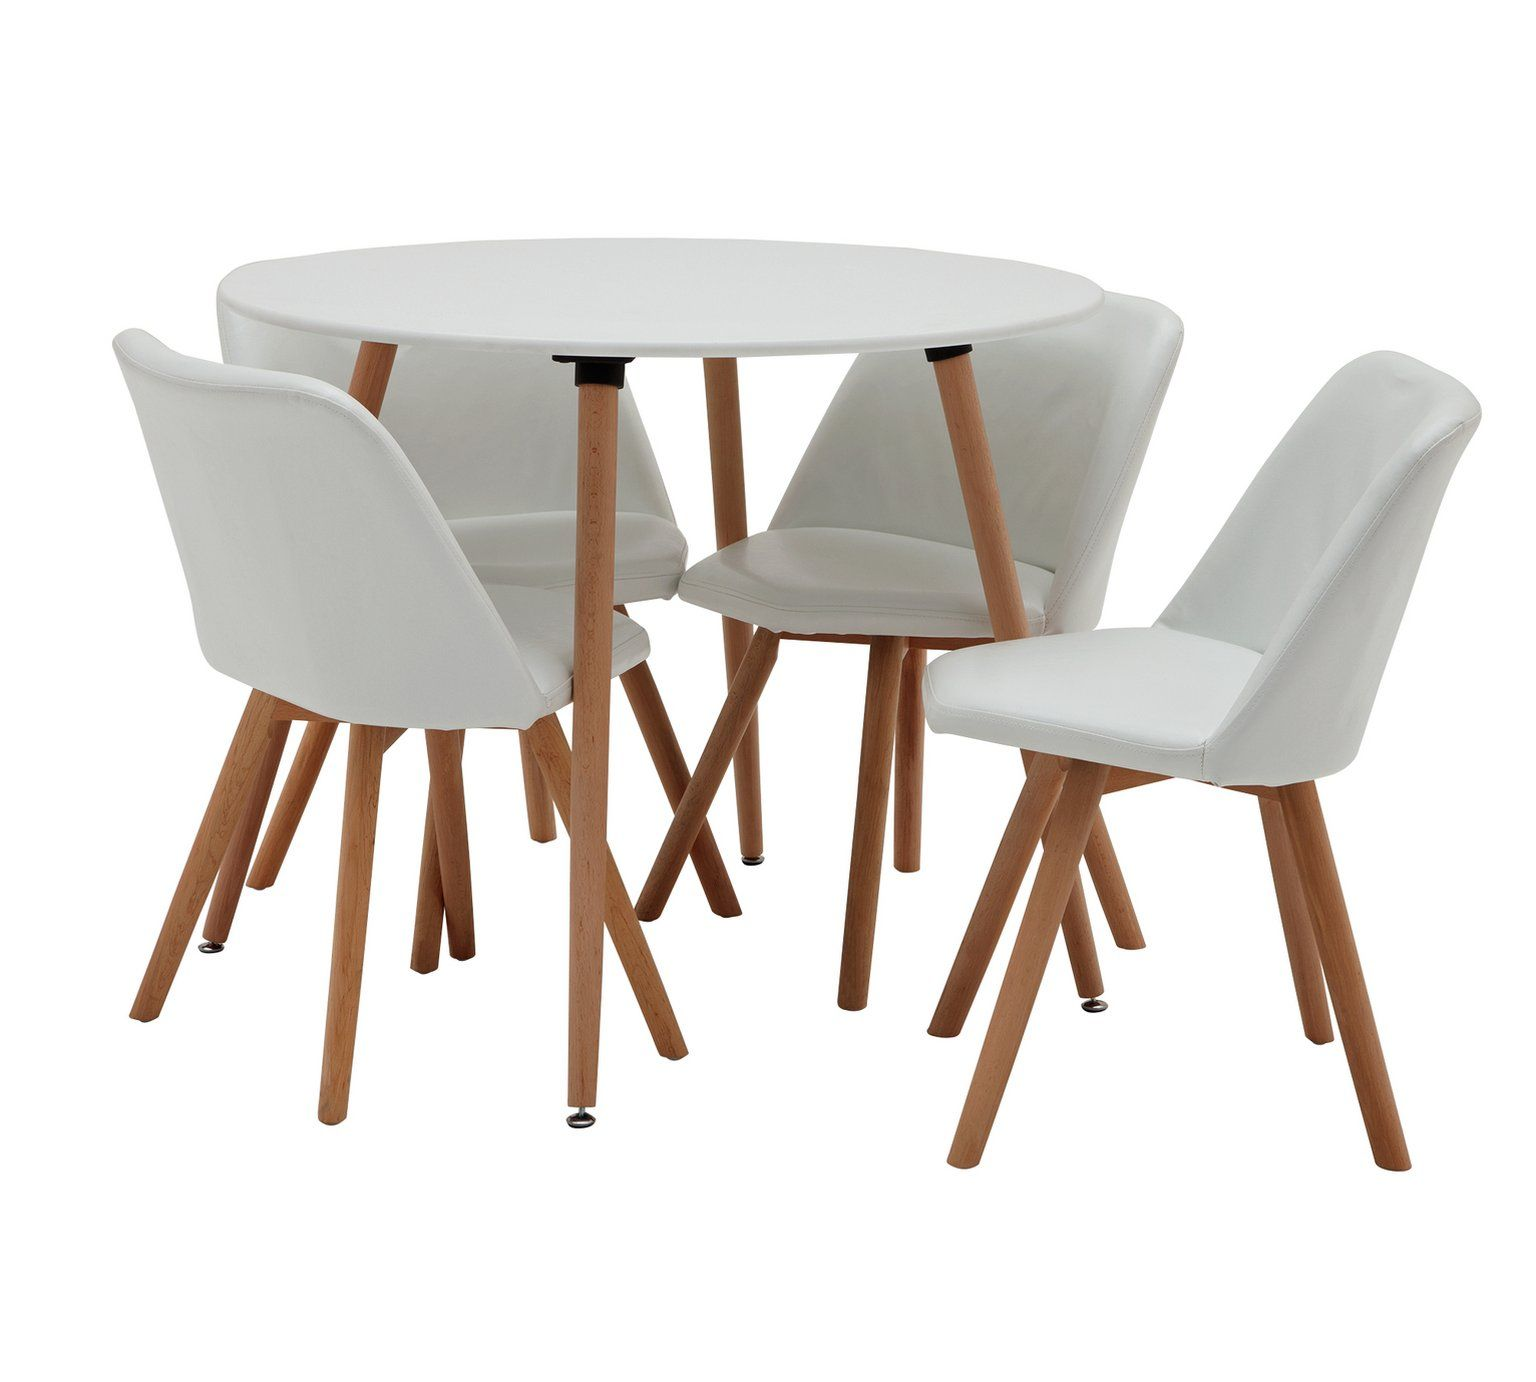 Argos Kitchen Bar Table And Chairs: Home Quattro Round Table & 4 Chairs - White